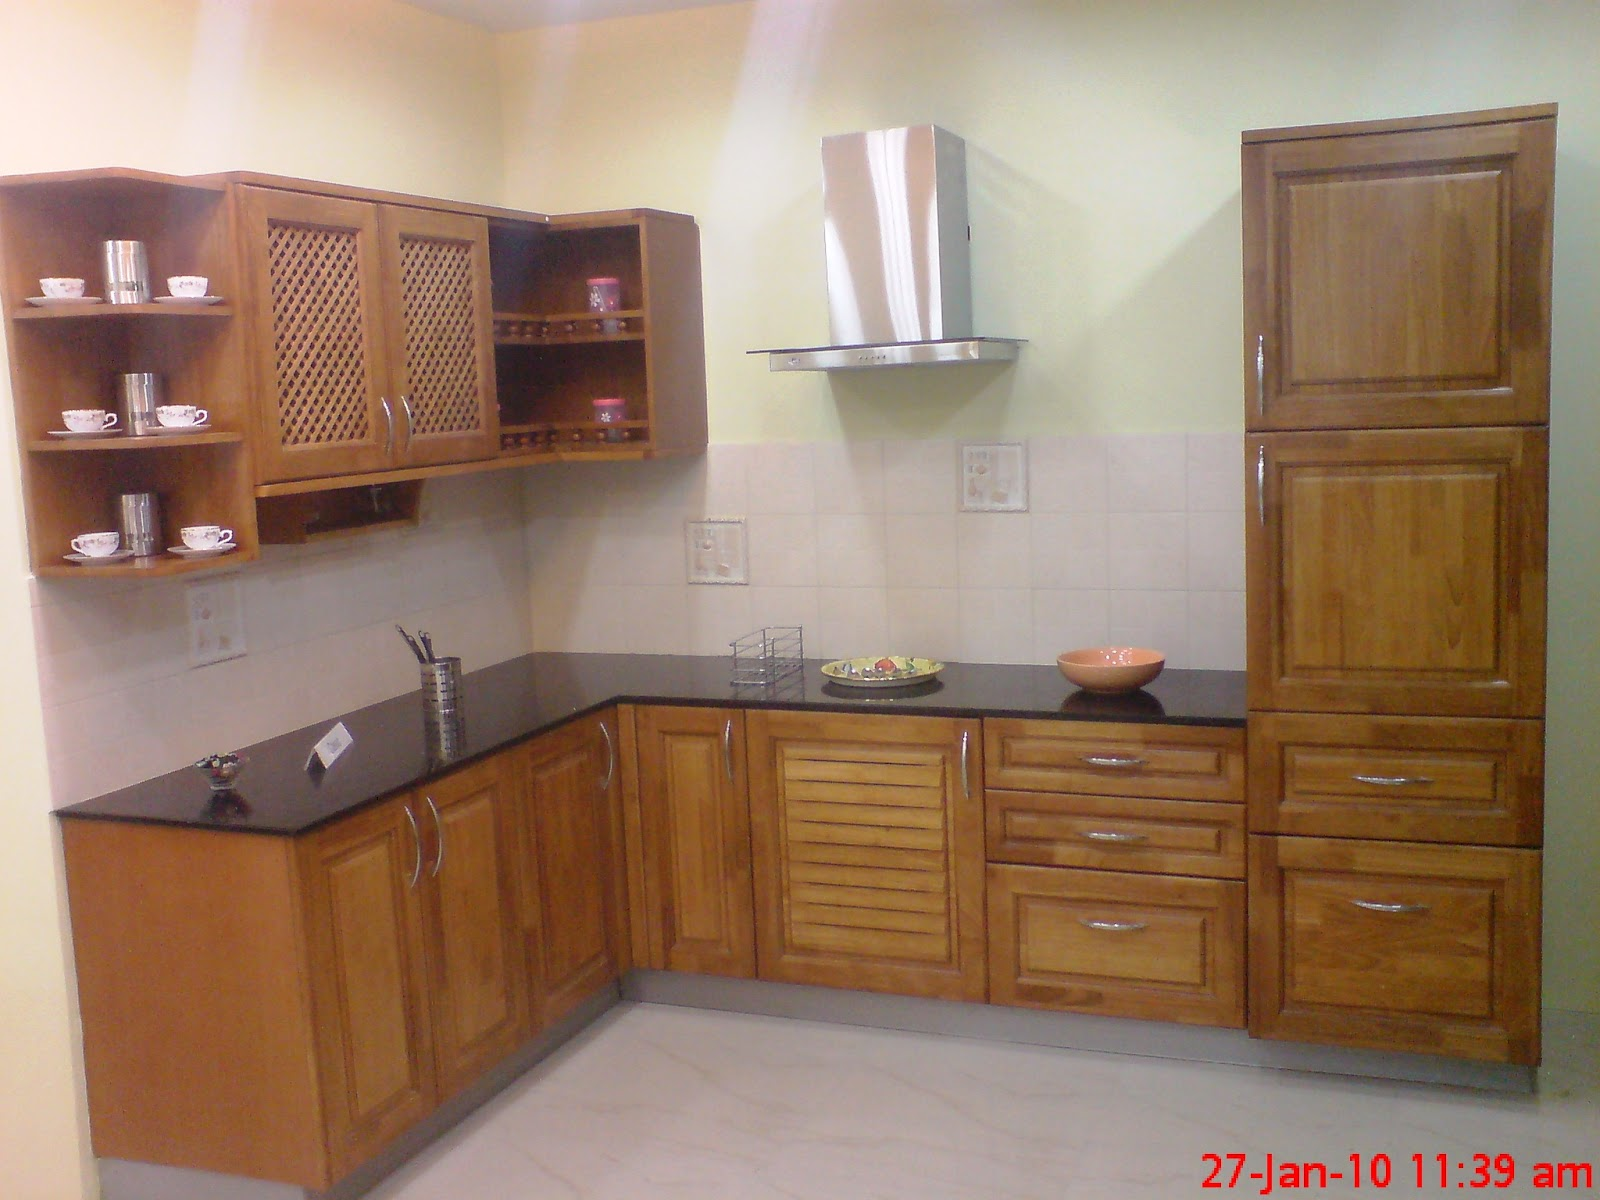 Image Gallery For Interior, Modular Kitchen, And Painting